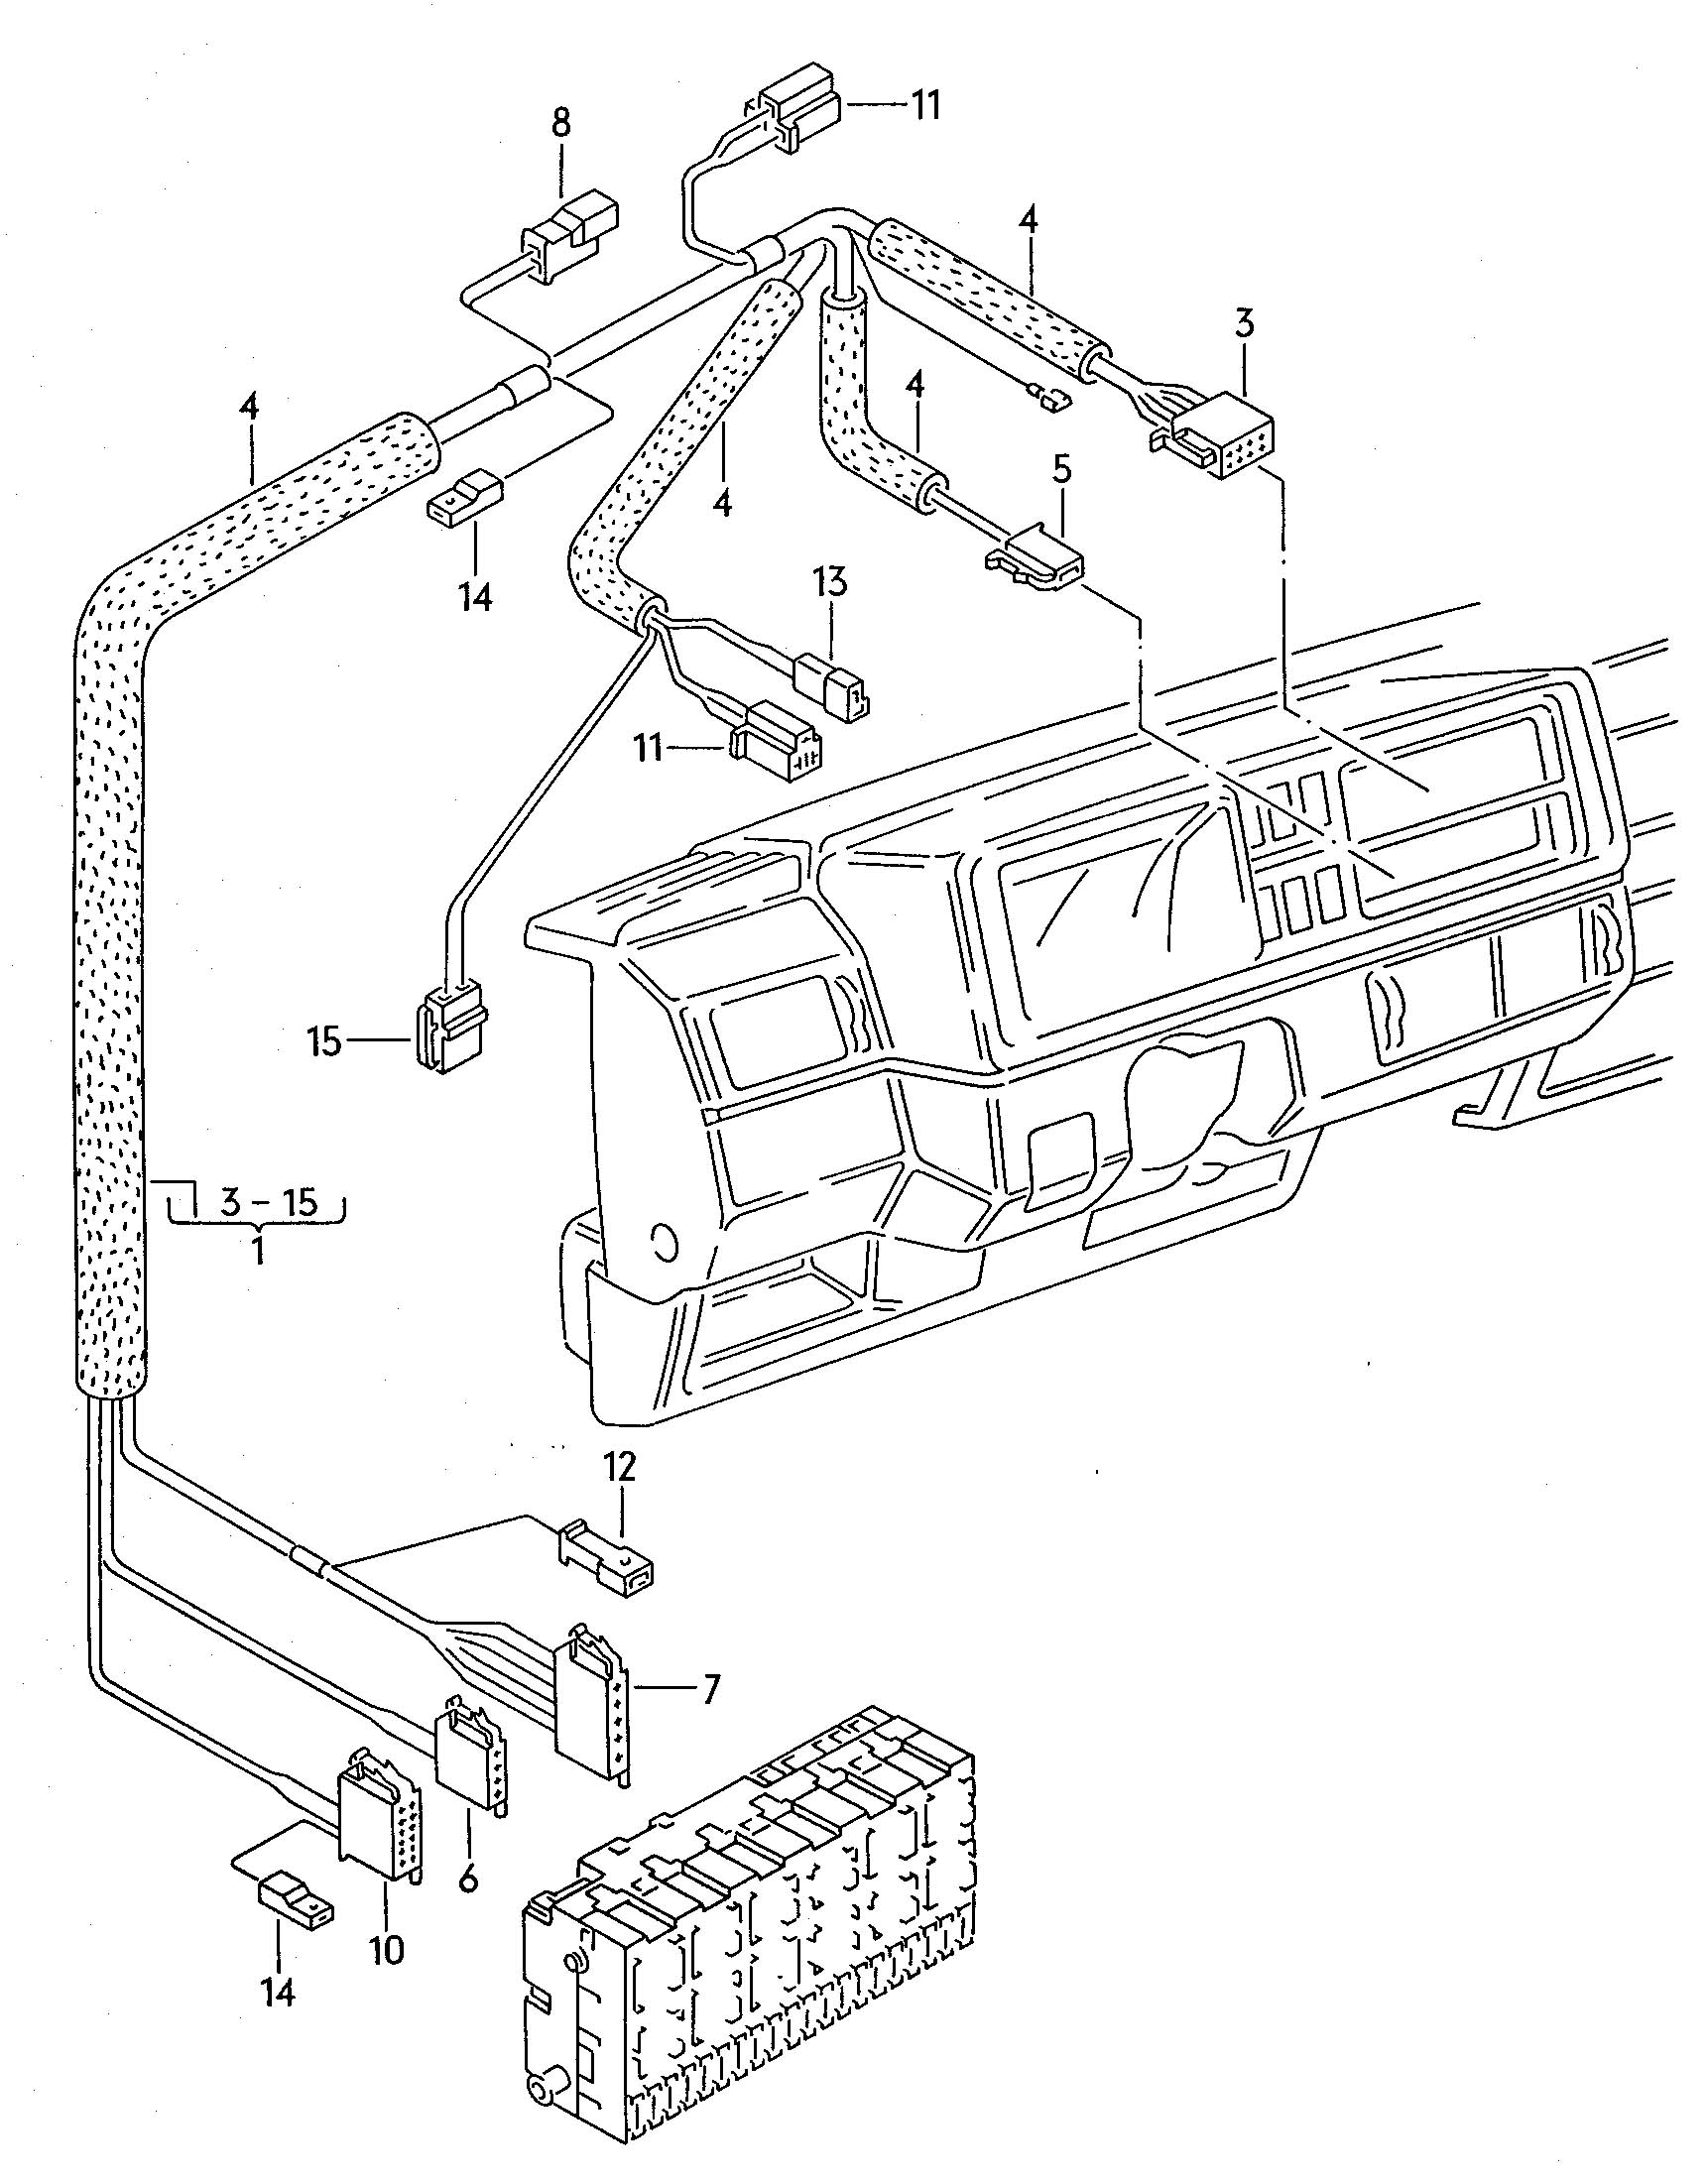 Vw Tiguan Problems 2009 Engine Diagram And Wiring Routan Fuse Box Volkswagen Moreover Best What To Drive Images On Pinterest Cars Car Also 81